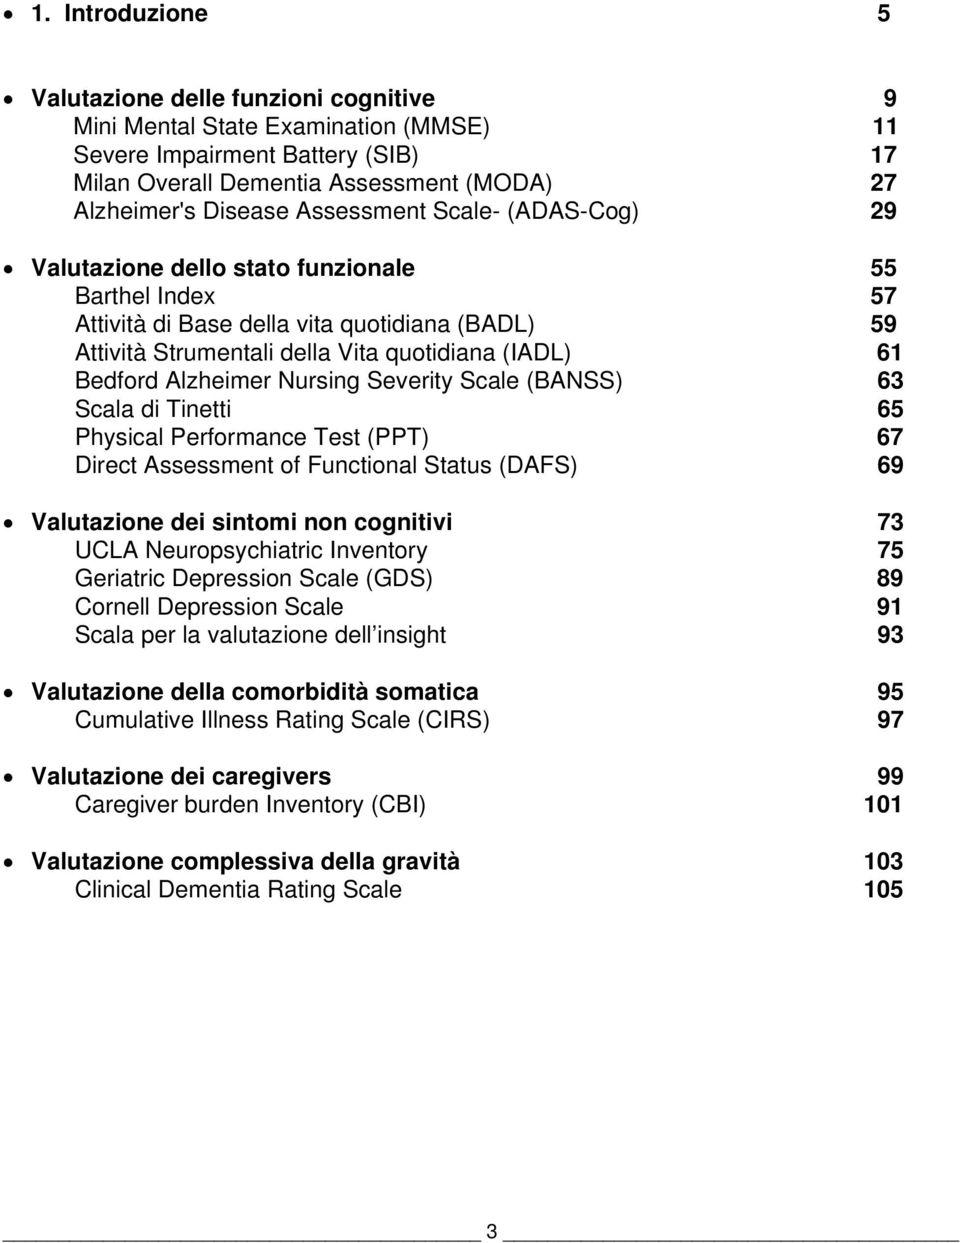 Alzheimer Nursing Severity Scale (BANSS) 63 Scala di Tinetti 65 Physical Performance Test (PPT) 67 Direct Assessment of Functional Status (DAFS) 69 Valutazione dei sintomi non cognitivi 73 UCLA